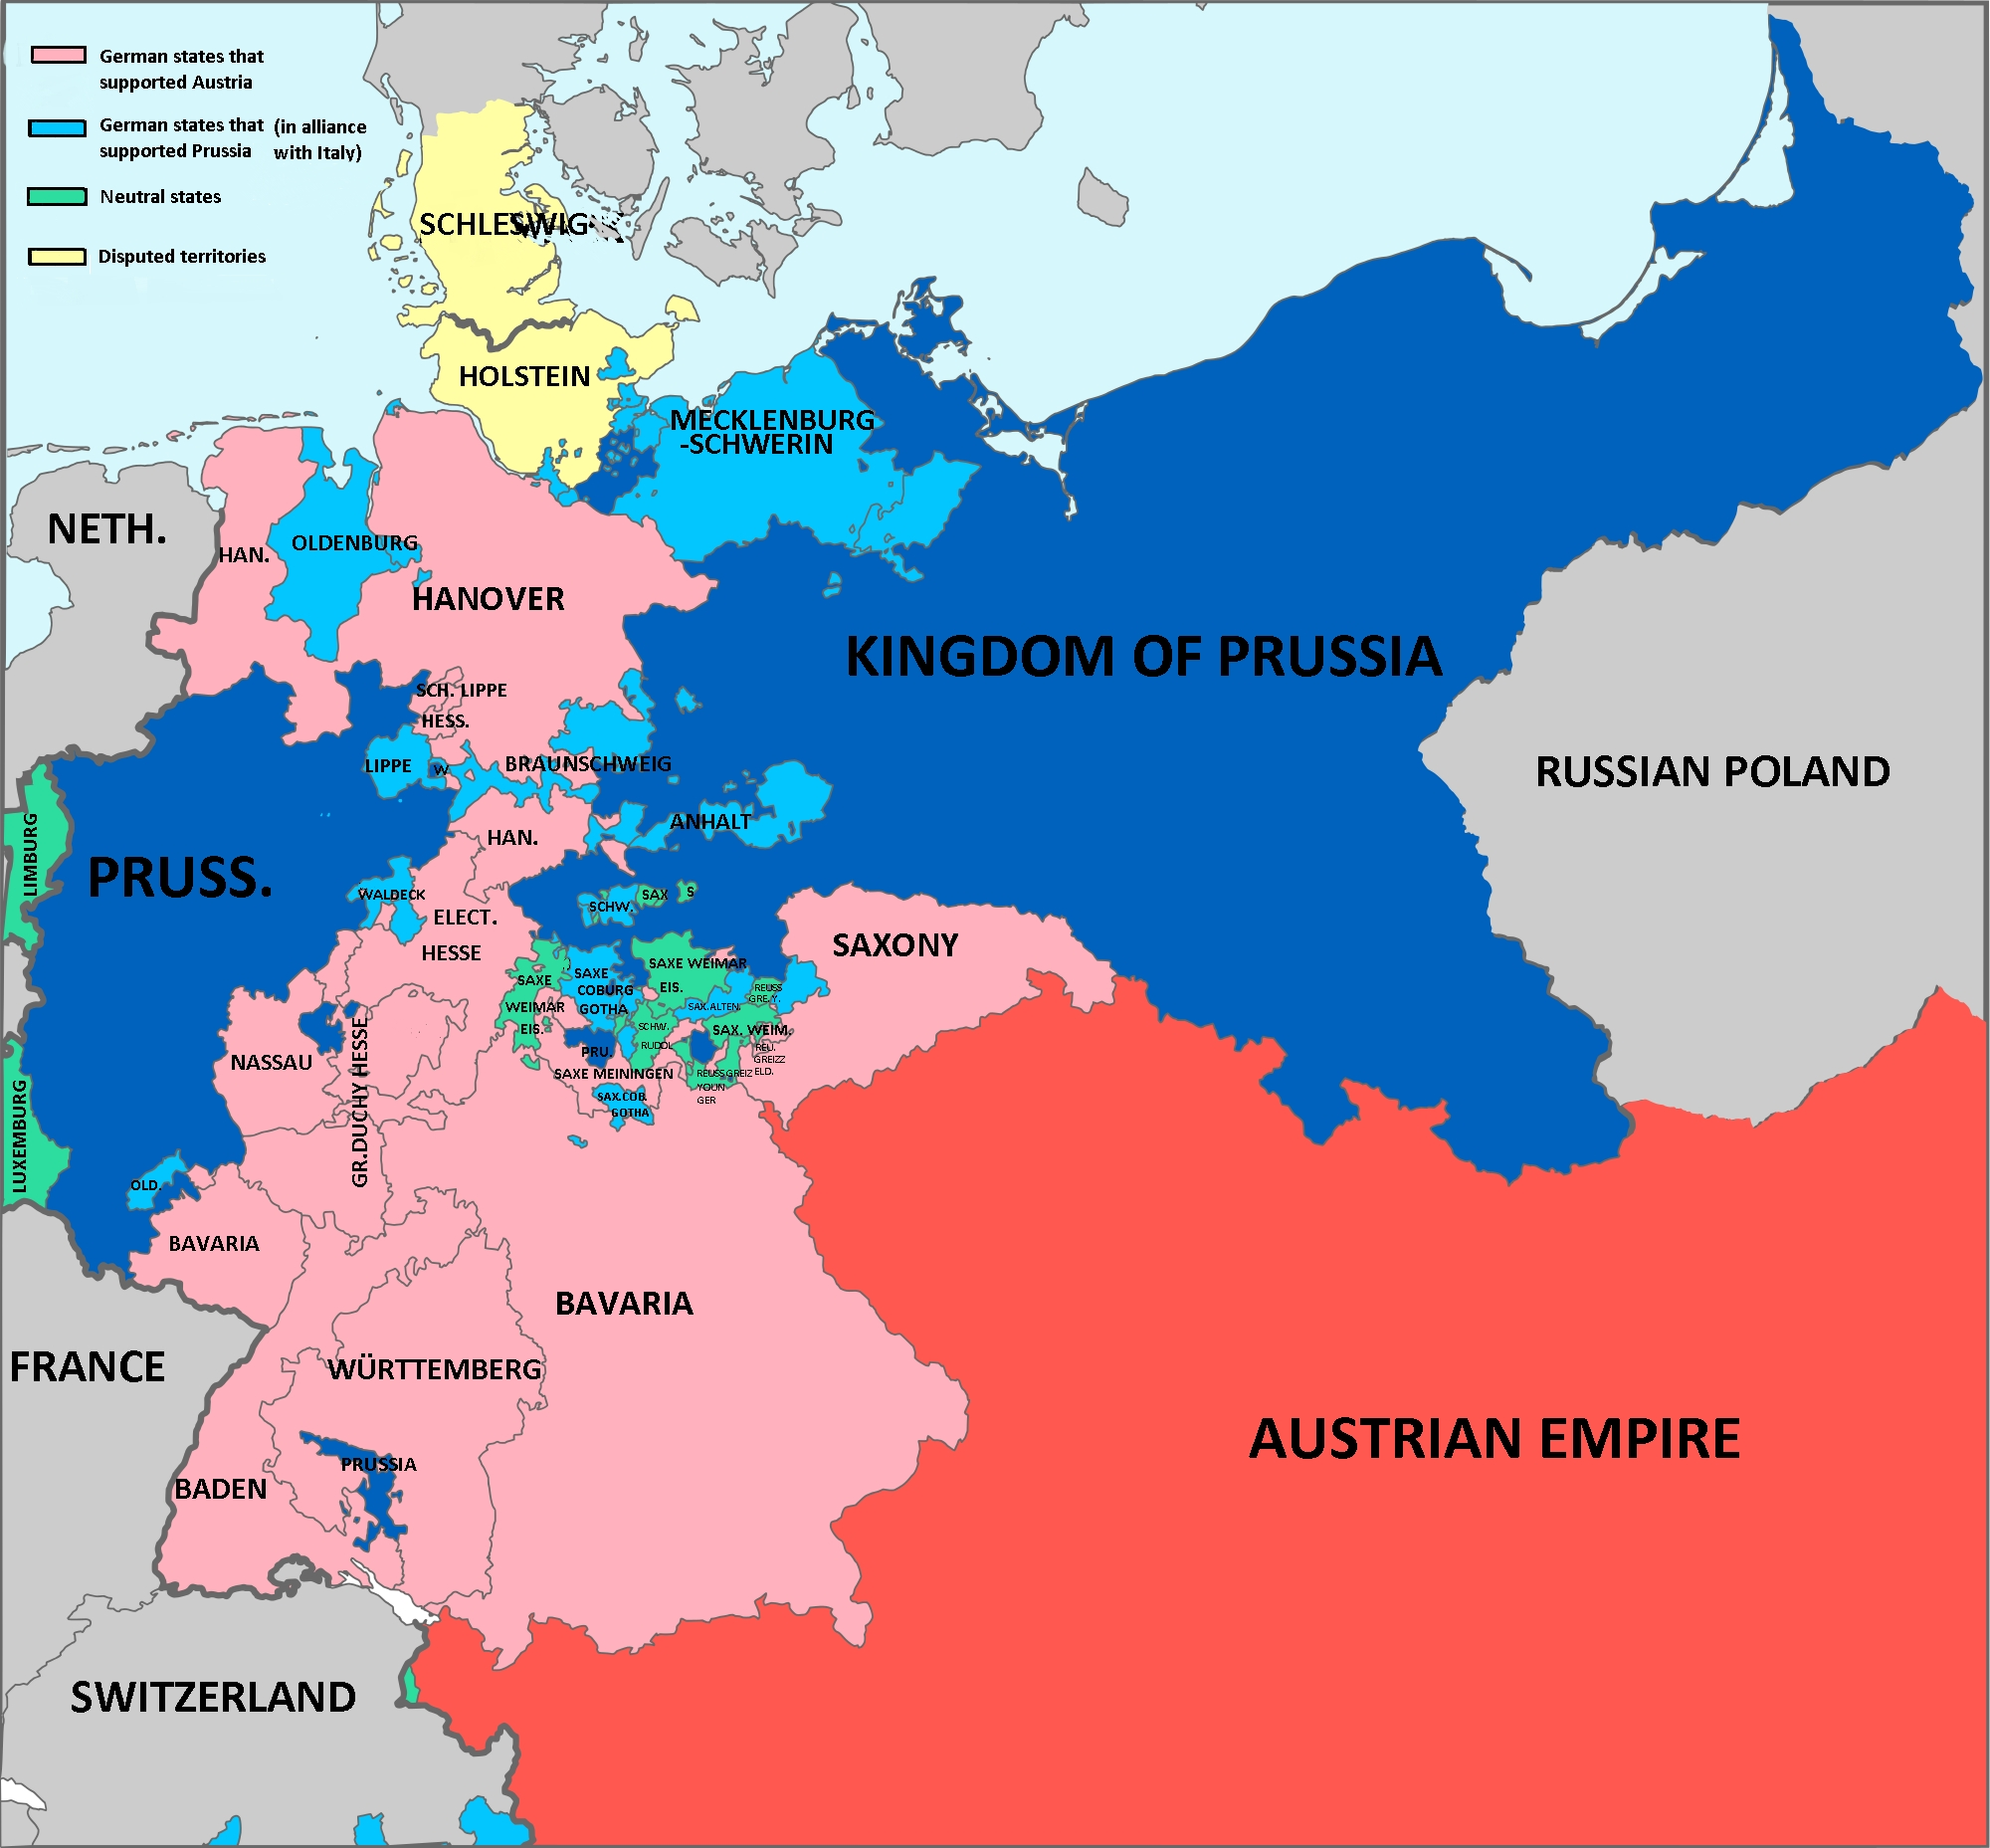 Map Showing Alliances During Austro-Prussian (German) War 1866 pertaining to Map Of German States Before Unification